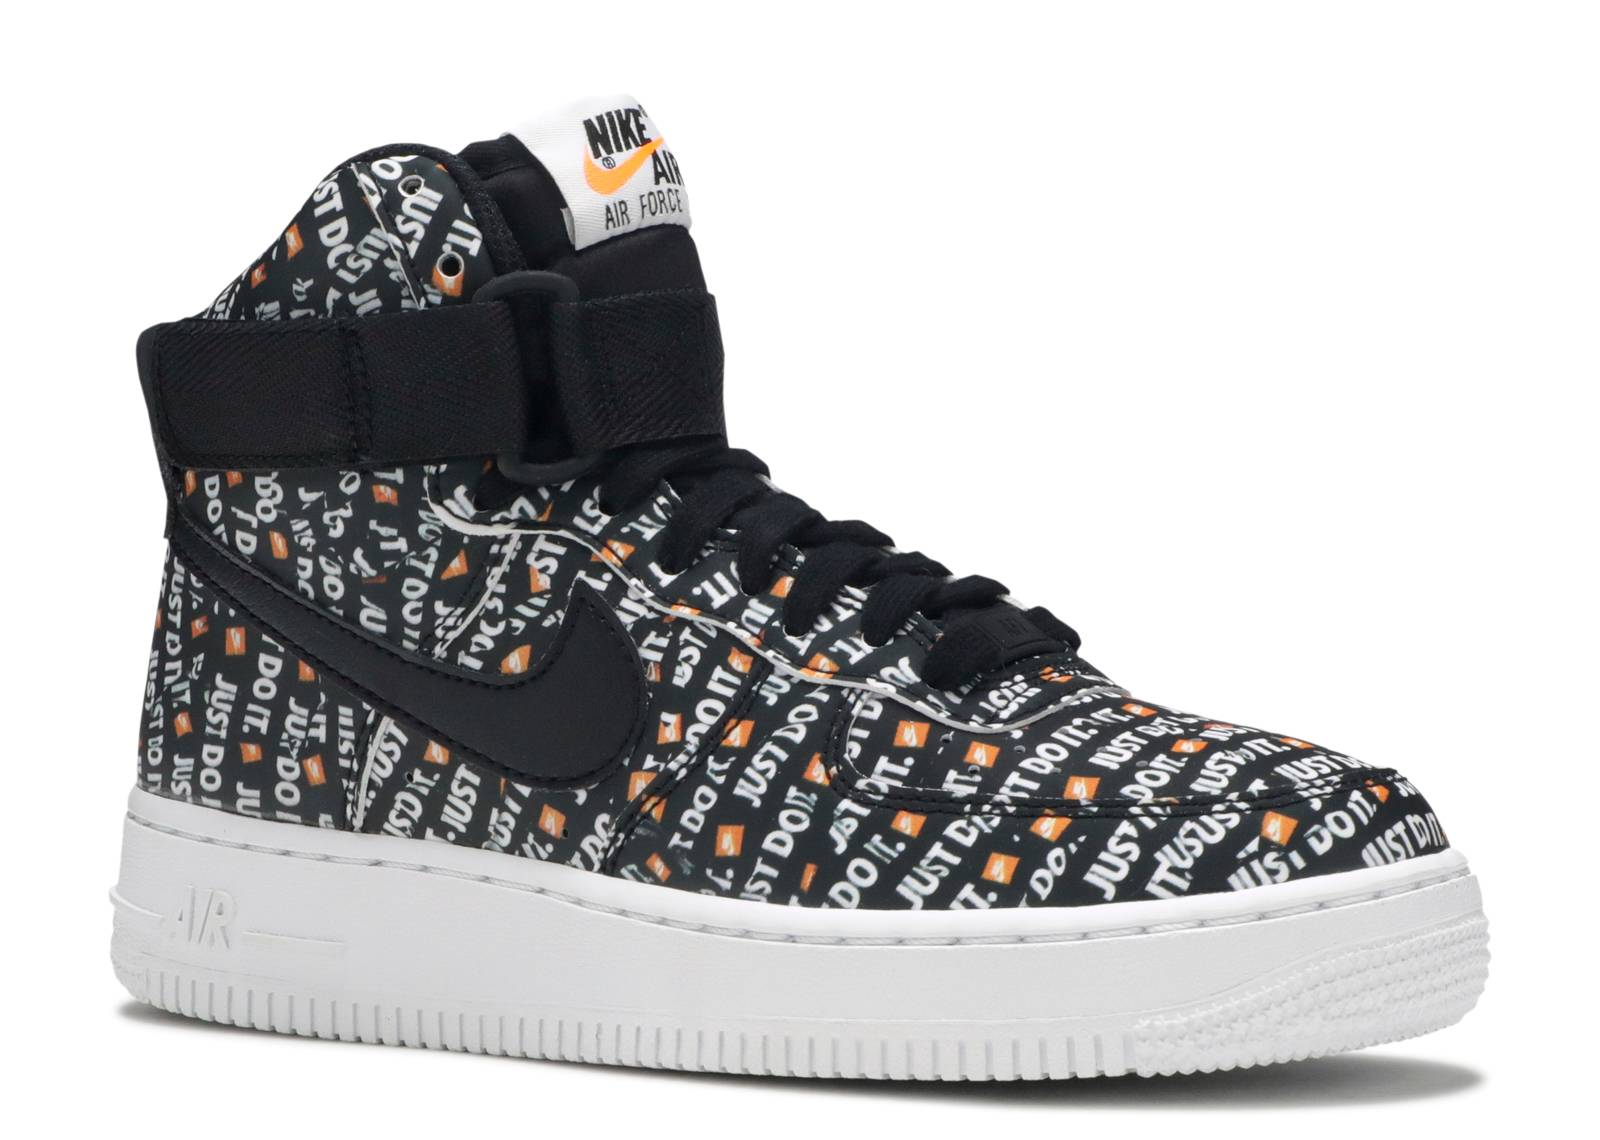 Details about Nike Air Force 1 High LX AO5138 001 JDI 'Just Do it' BlackWhite Womens Size 5.5